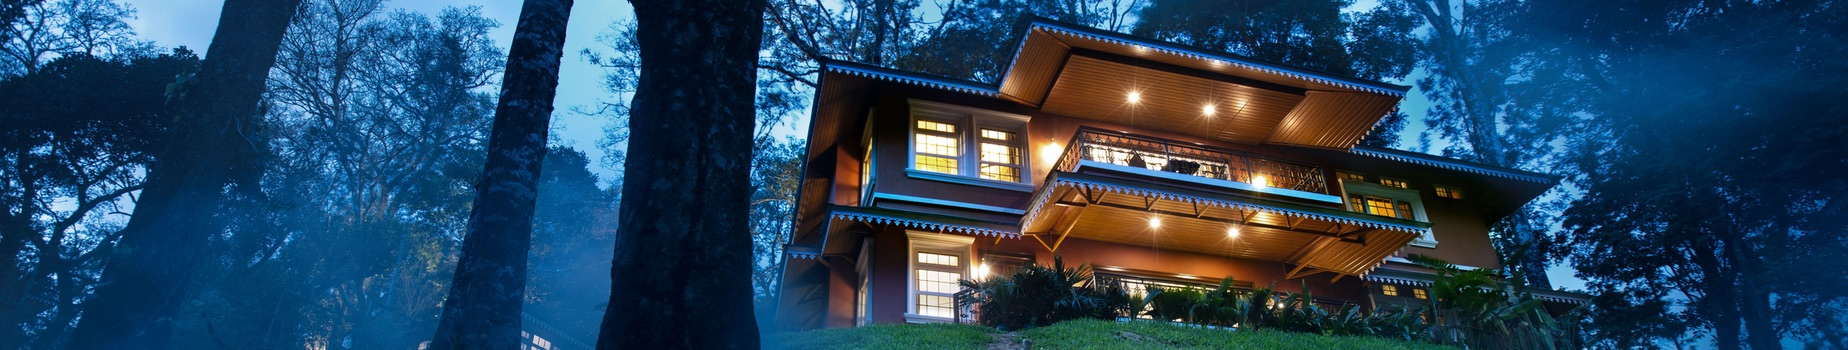 Grove View Suites - Coorg Wilderness Resort